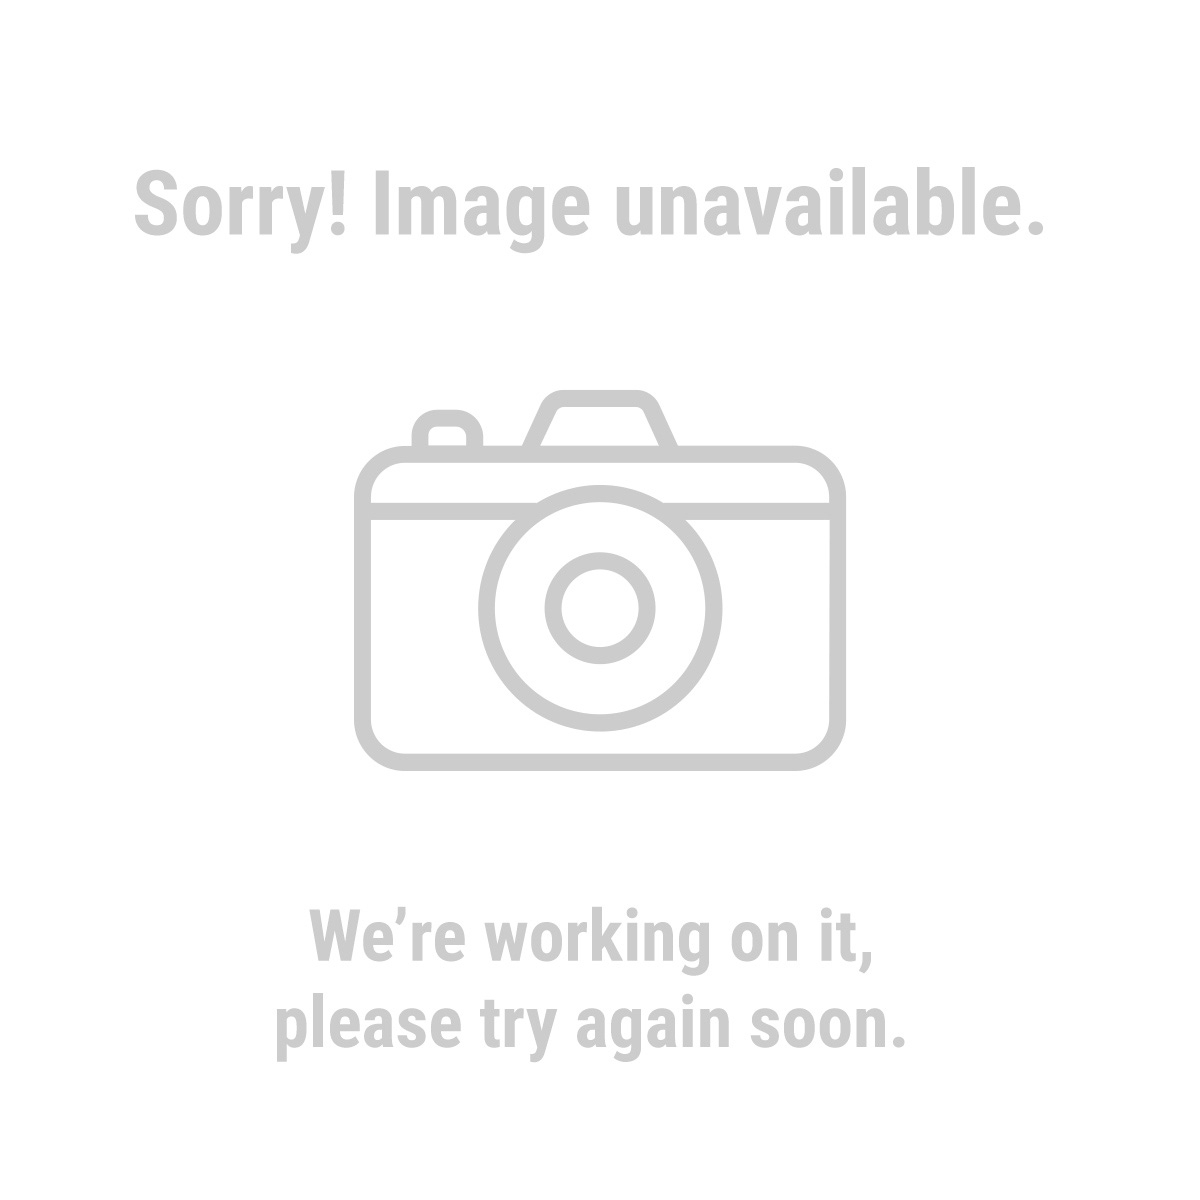 "Bunker Hill Security 67704 7 ft. x 3/8"" Braided Steel Security Cable"